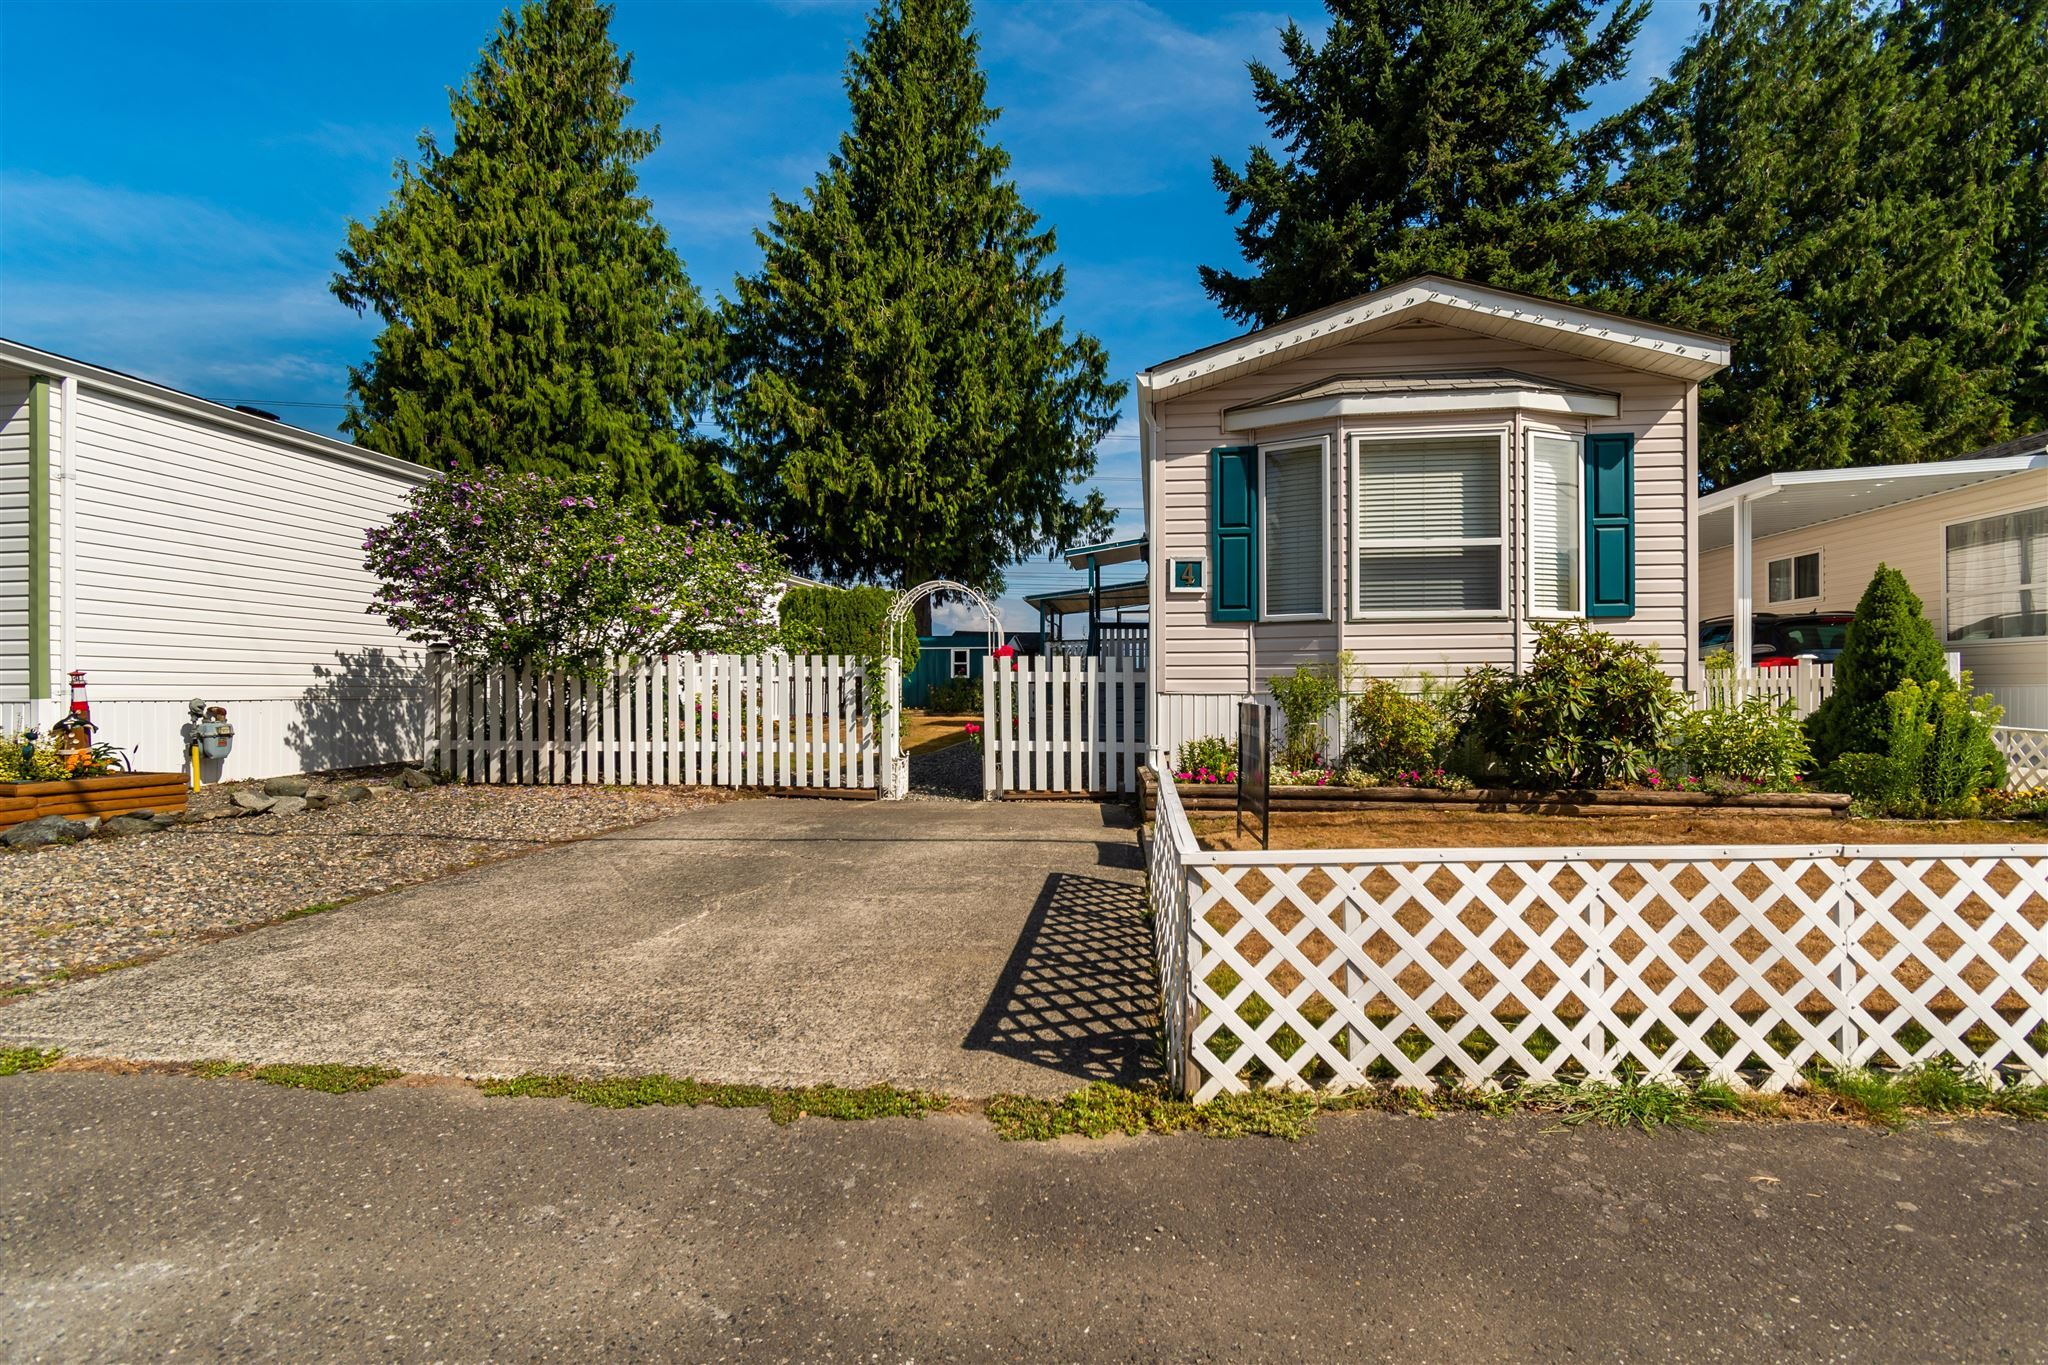 """Main Photo: 4 6338 VEDDER Road in Chilliwack: Sardis East Vedder Rd Manufactured Home for sale in """"MAPLE MEADOWS"""" (Sardis)  : MLS®# R2608417"""